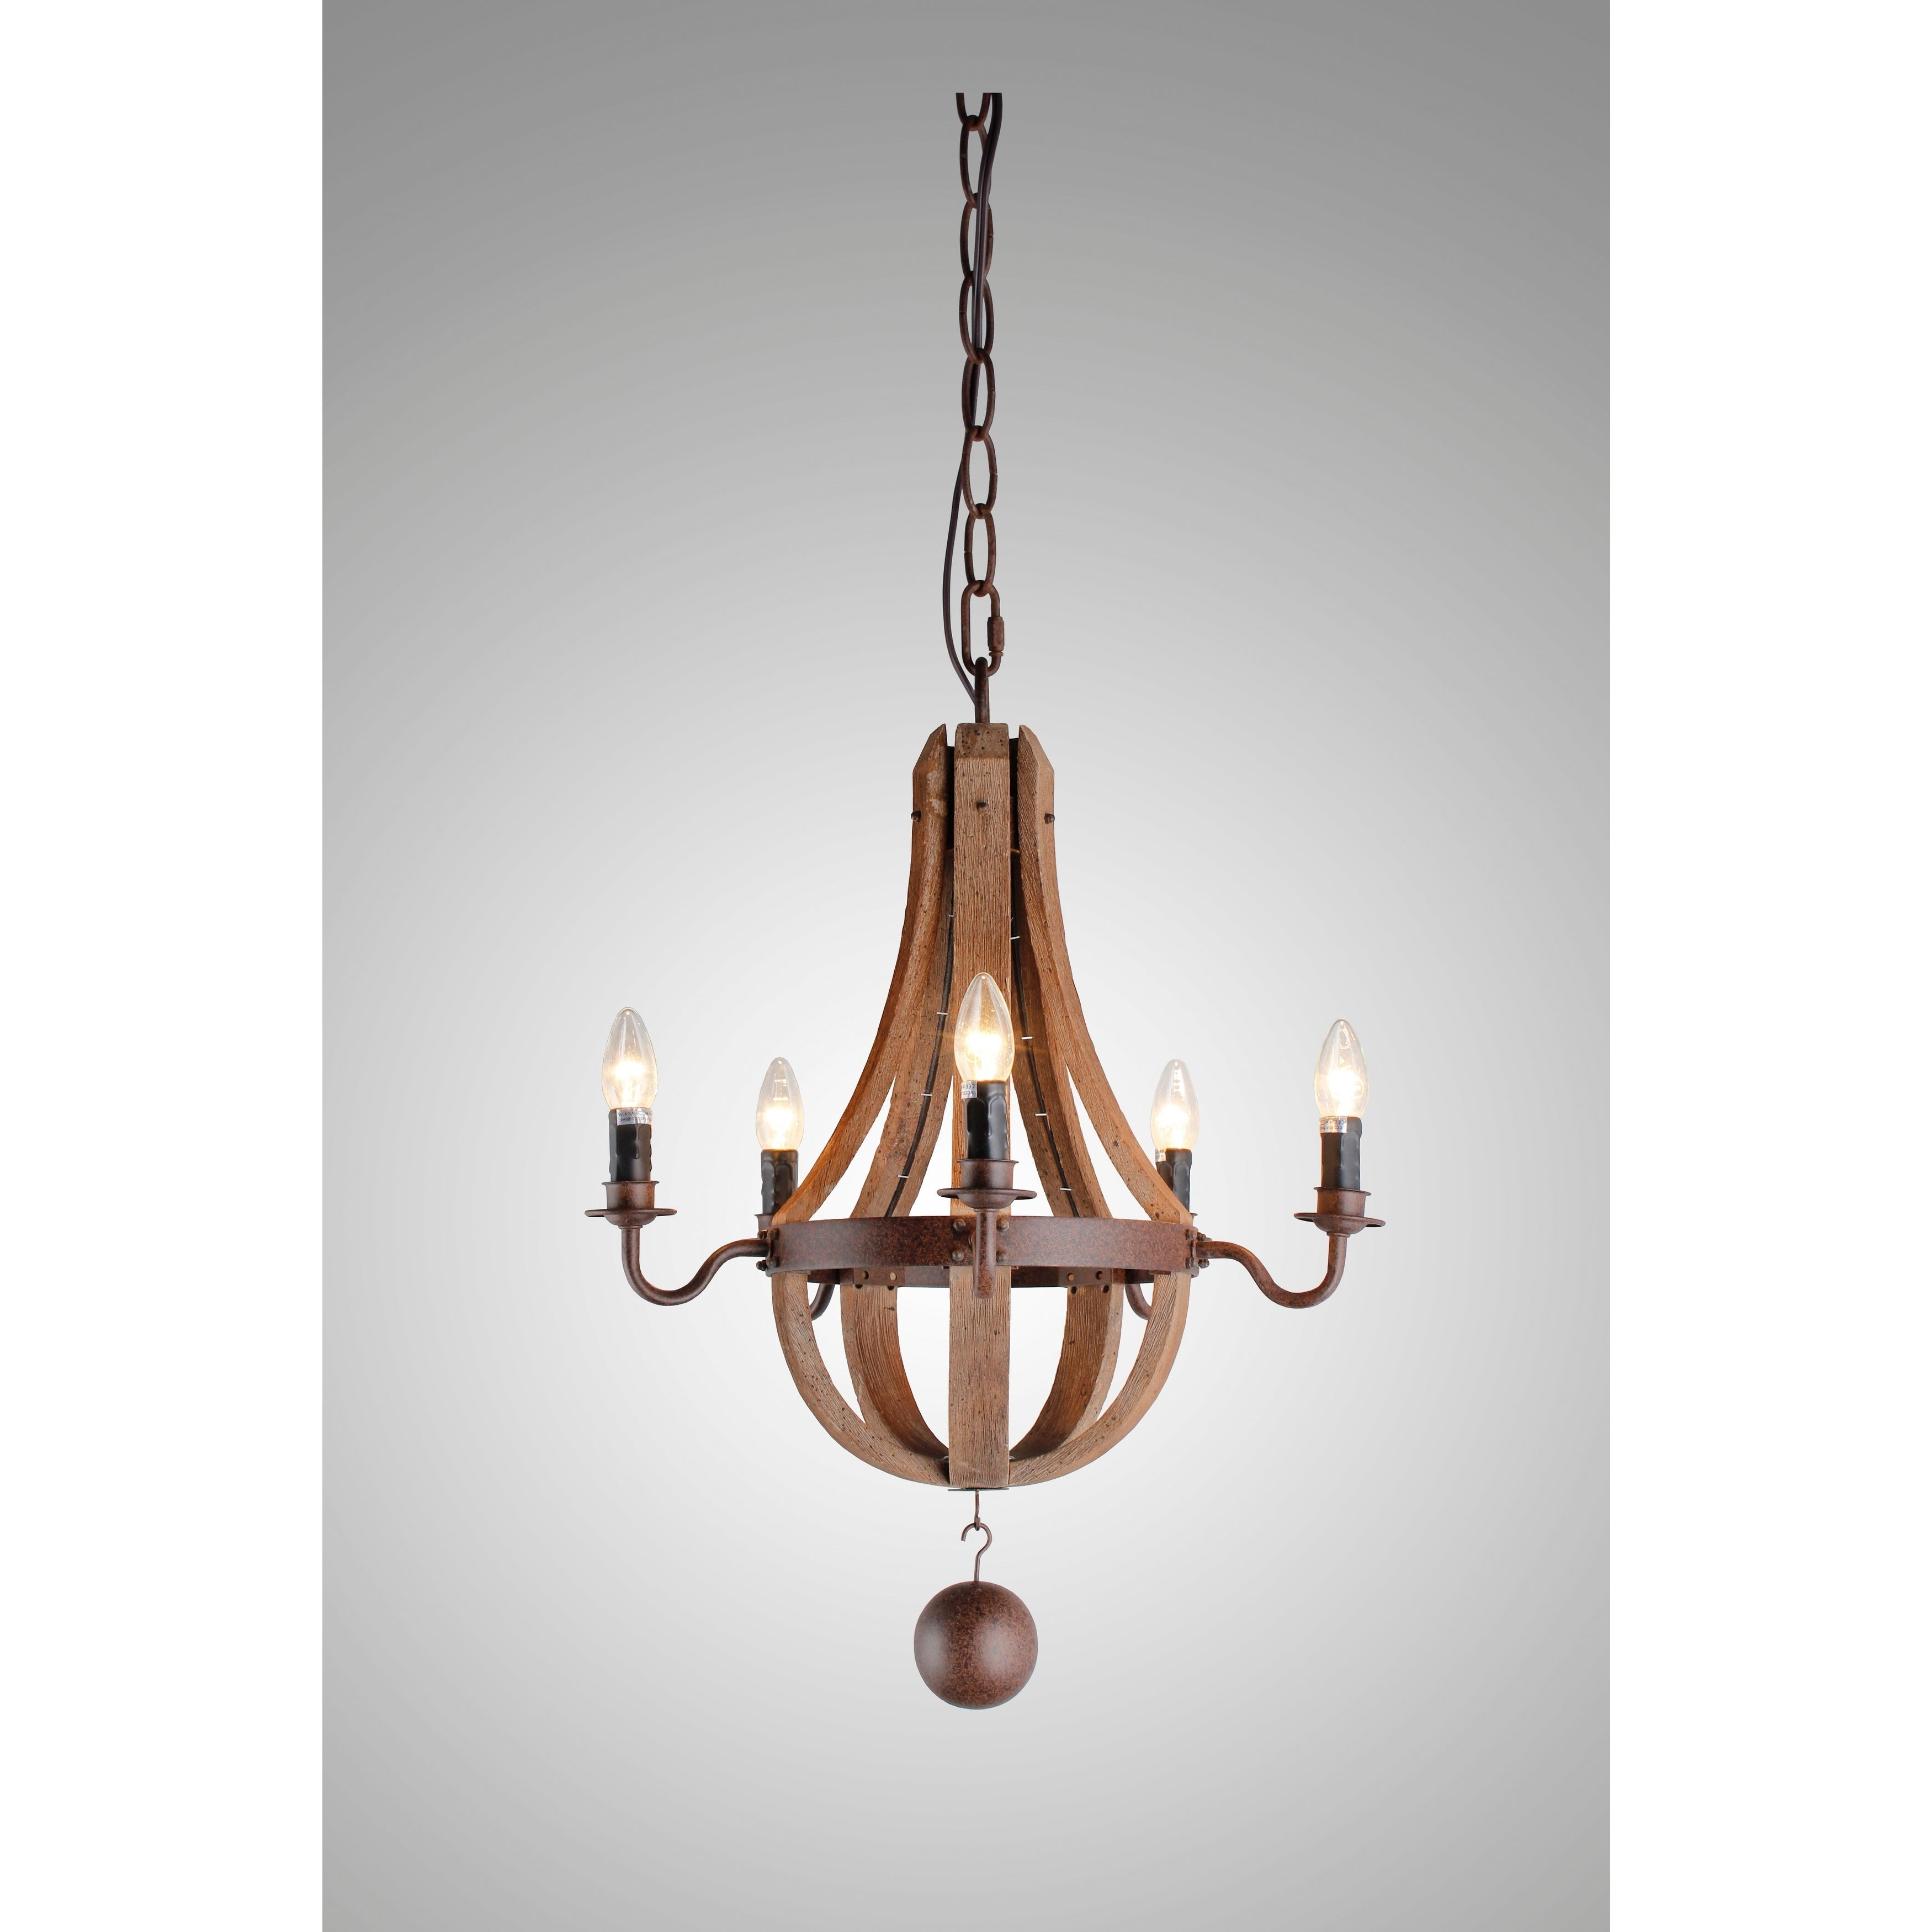 Berger 5-Light Candle Style Chandeliers with Recent Y-Decor 5 Light Candle-Style Chandelier In Iron Frame & Rustic Finish